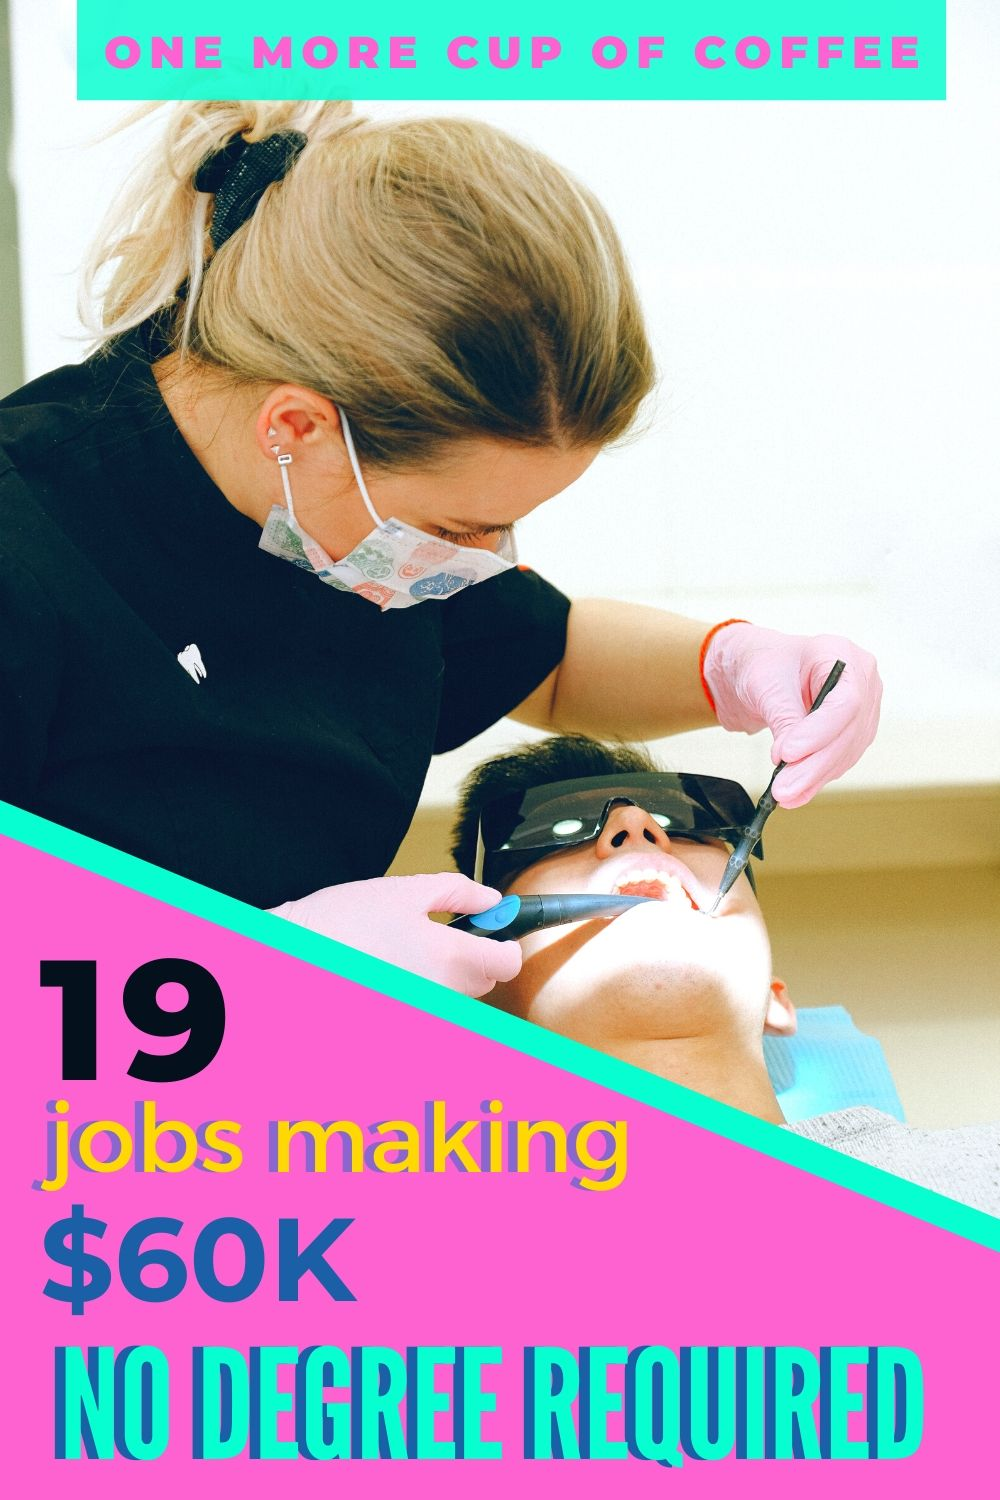 Dental assistant cleaning teeth representing one of the 19 jobs making $60K and no degree required.